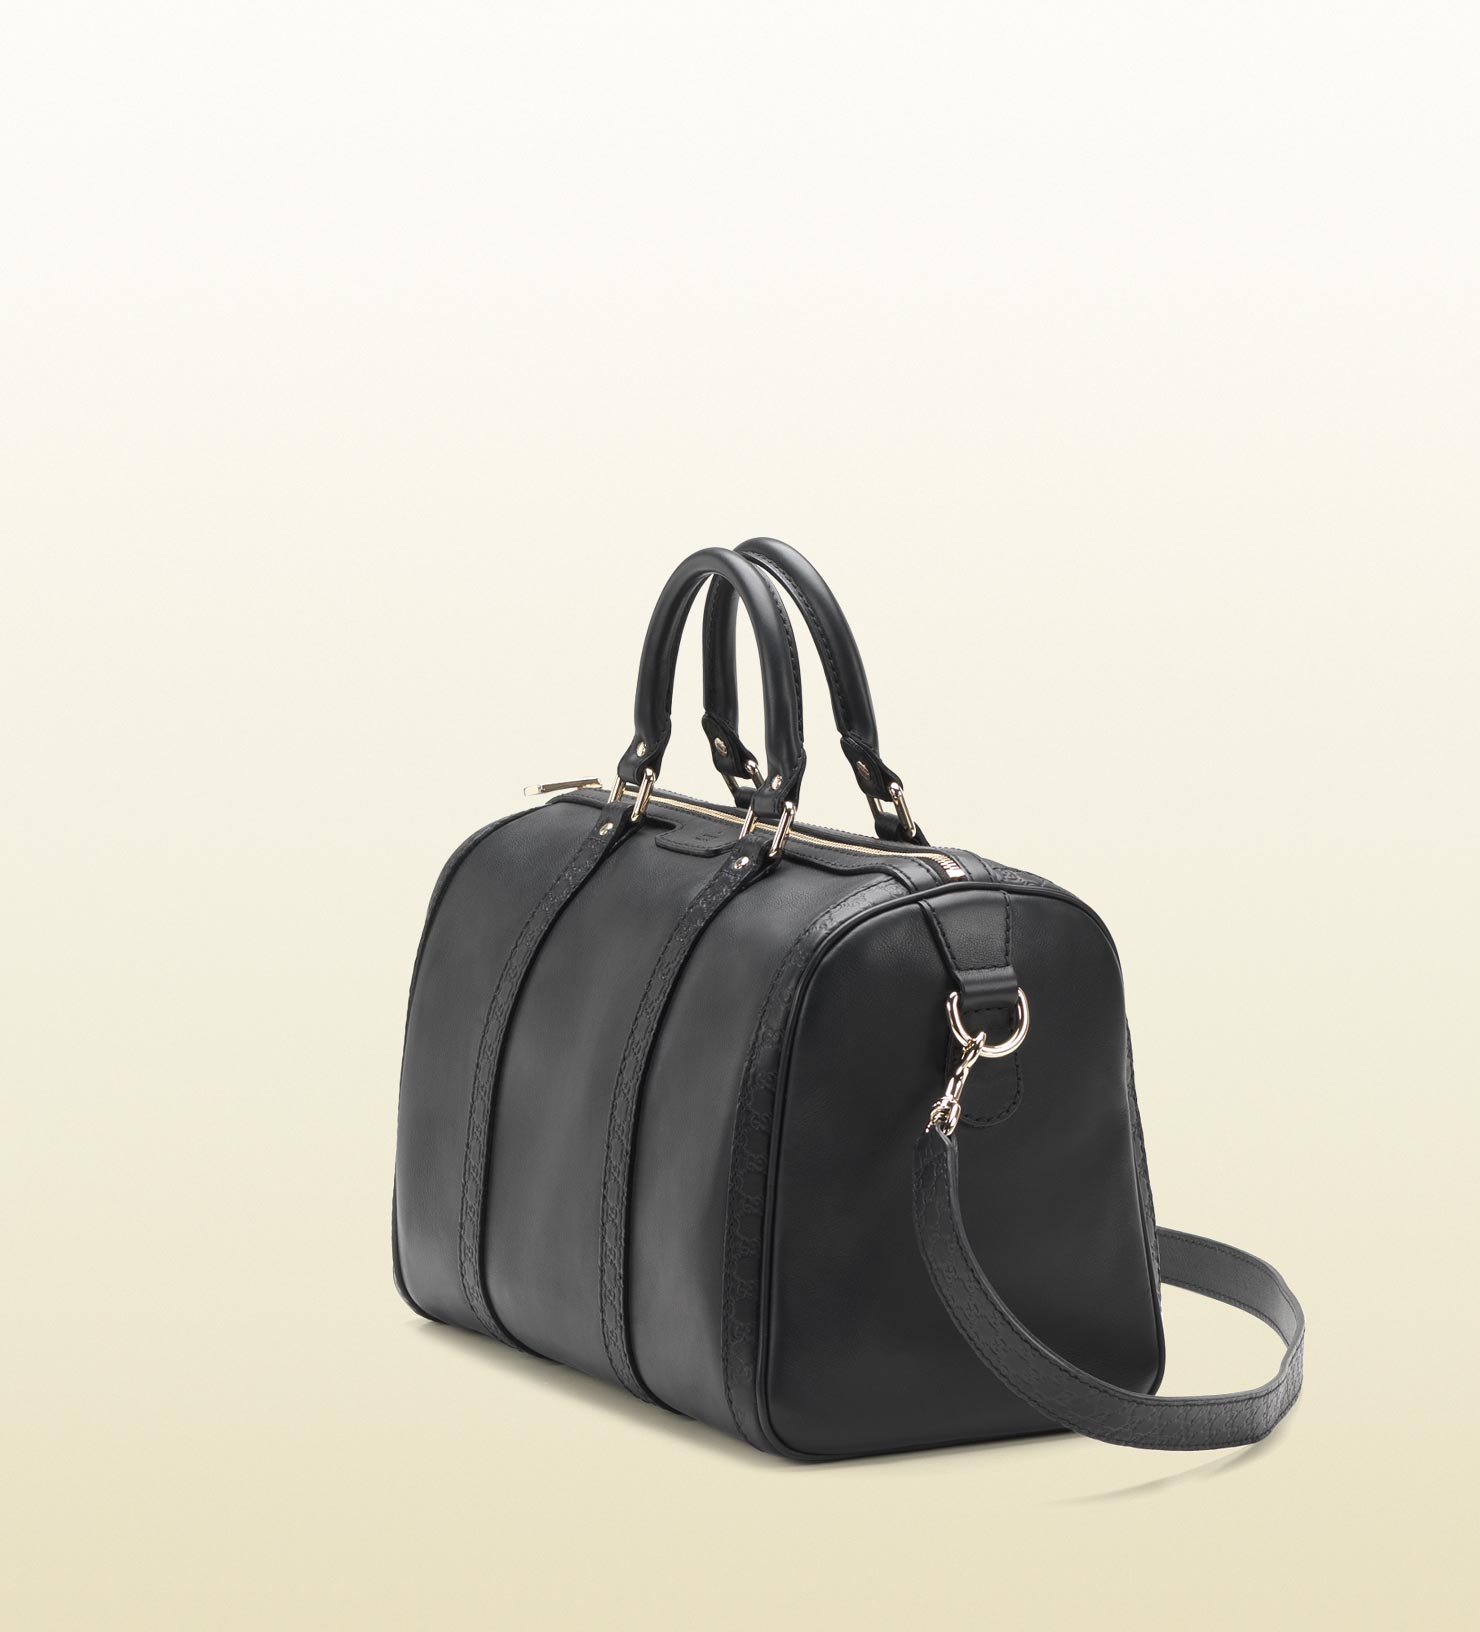 5ee60a2ce2a Lyst - Gucci Vintage Web Black Leather Boston Bag in Black for Men